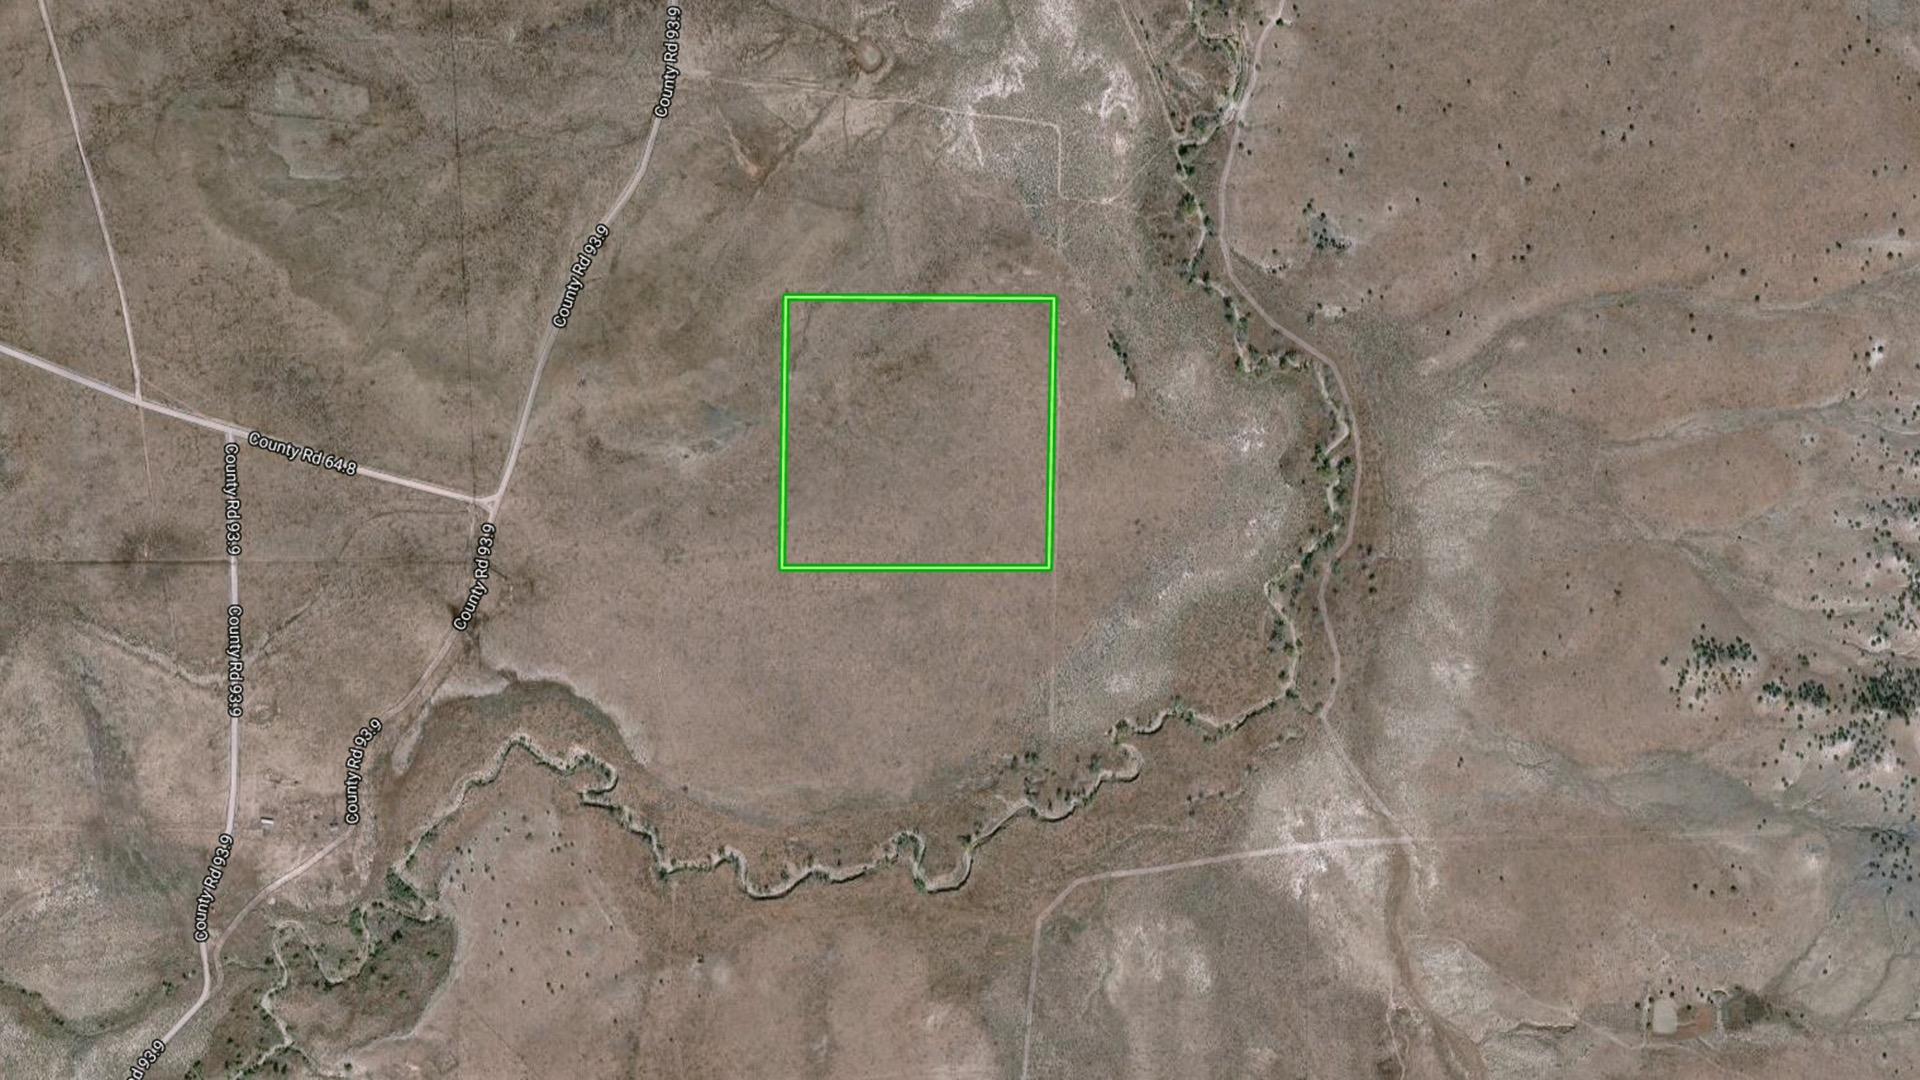 40 Acres with the Apishapa River along the East and South of the property